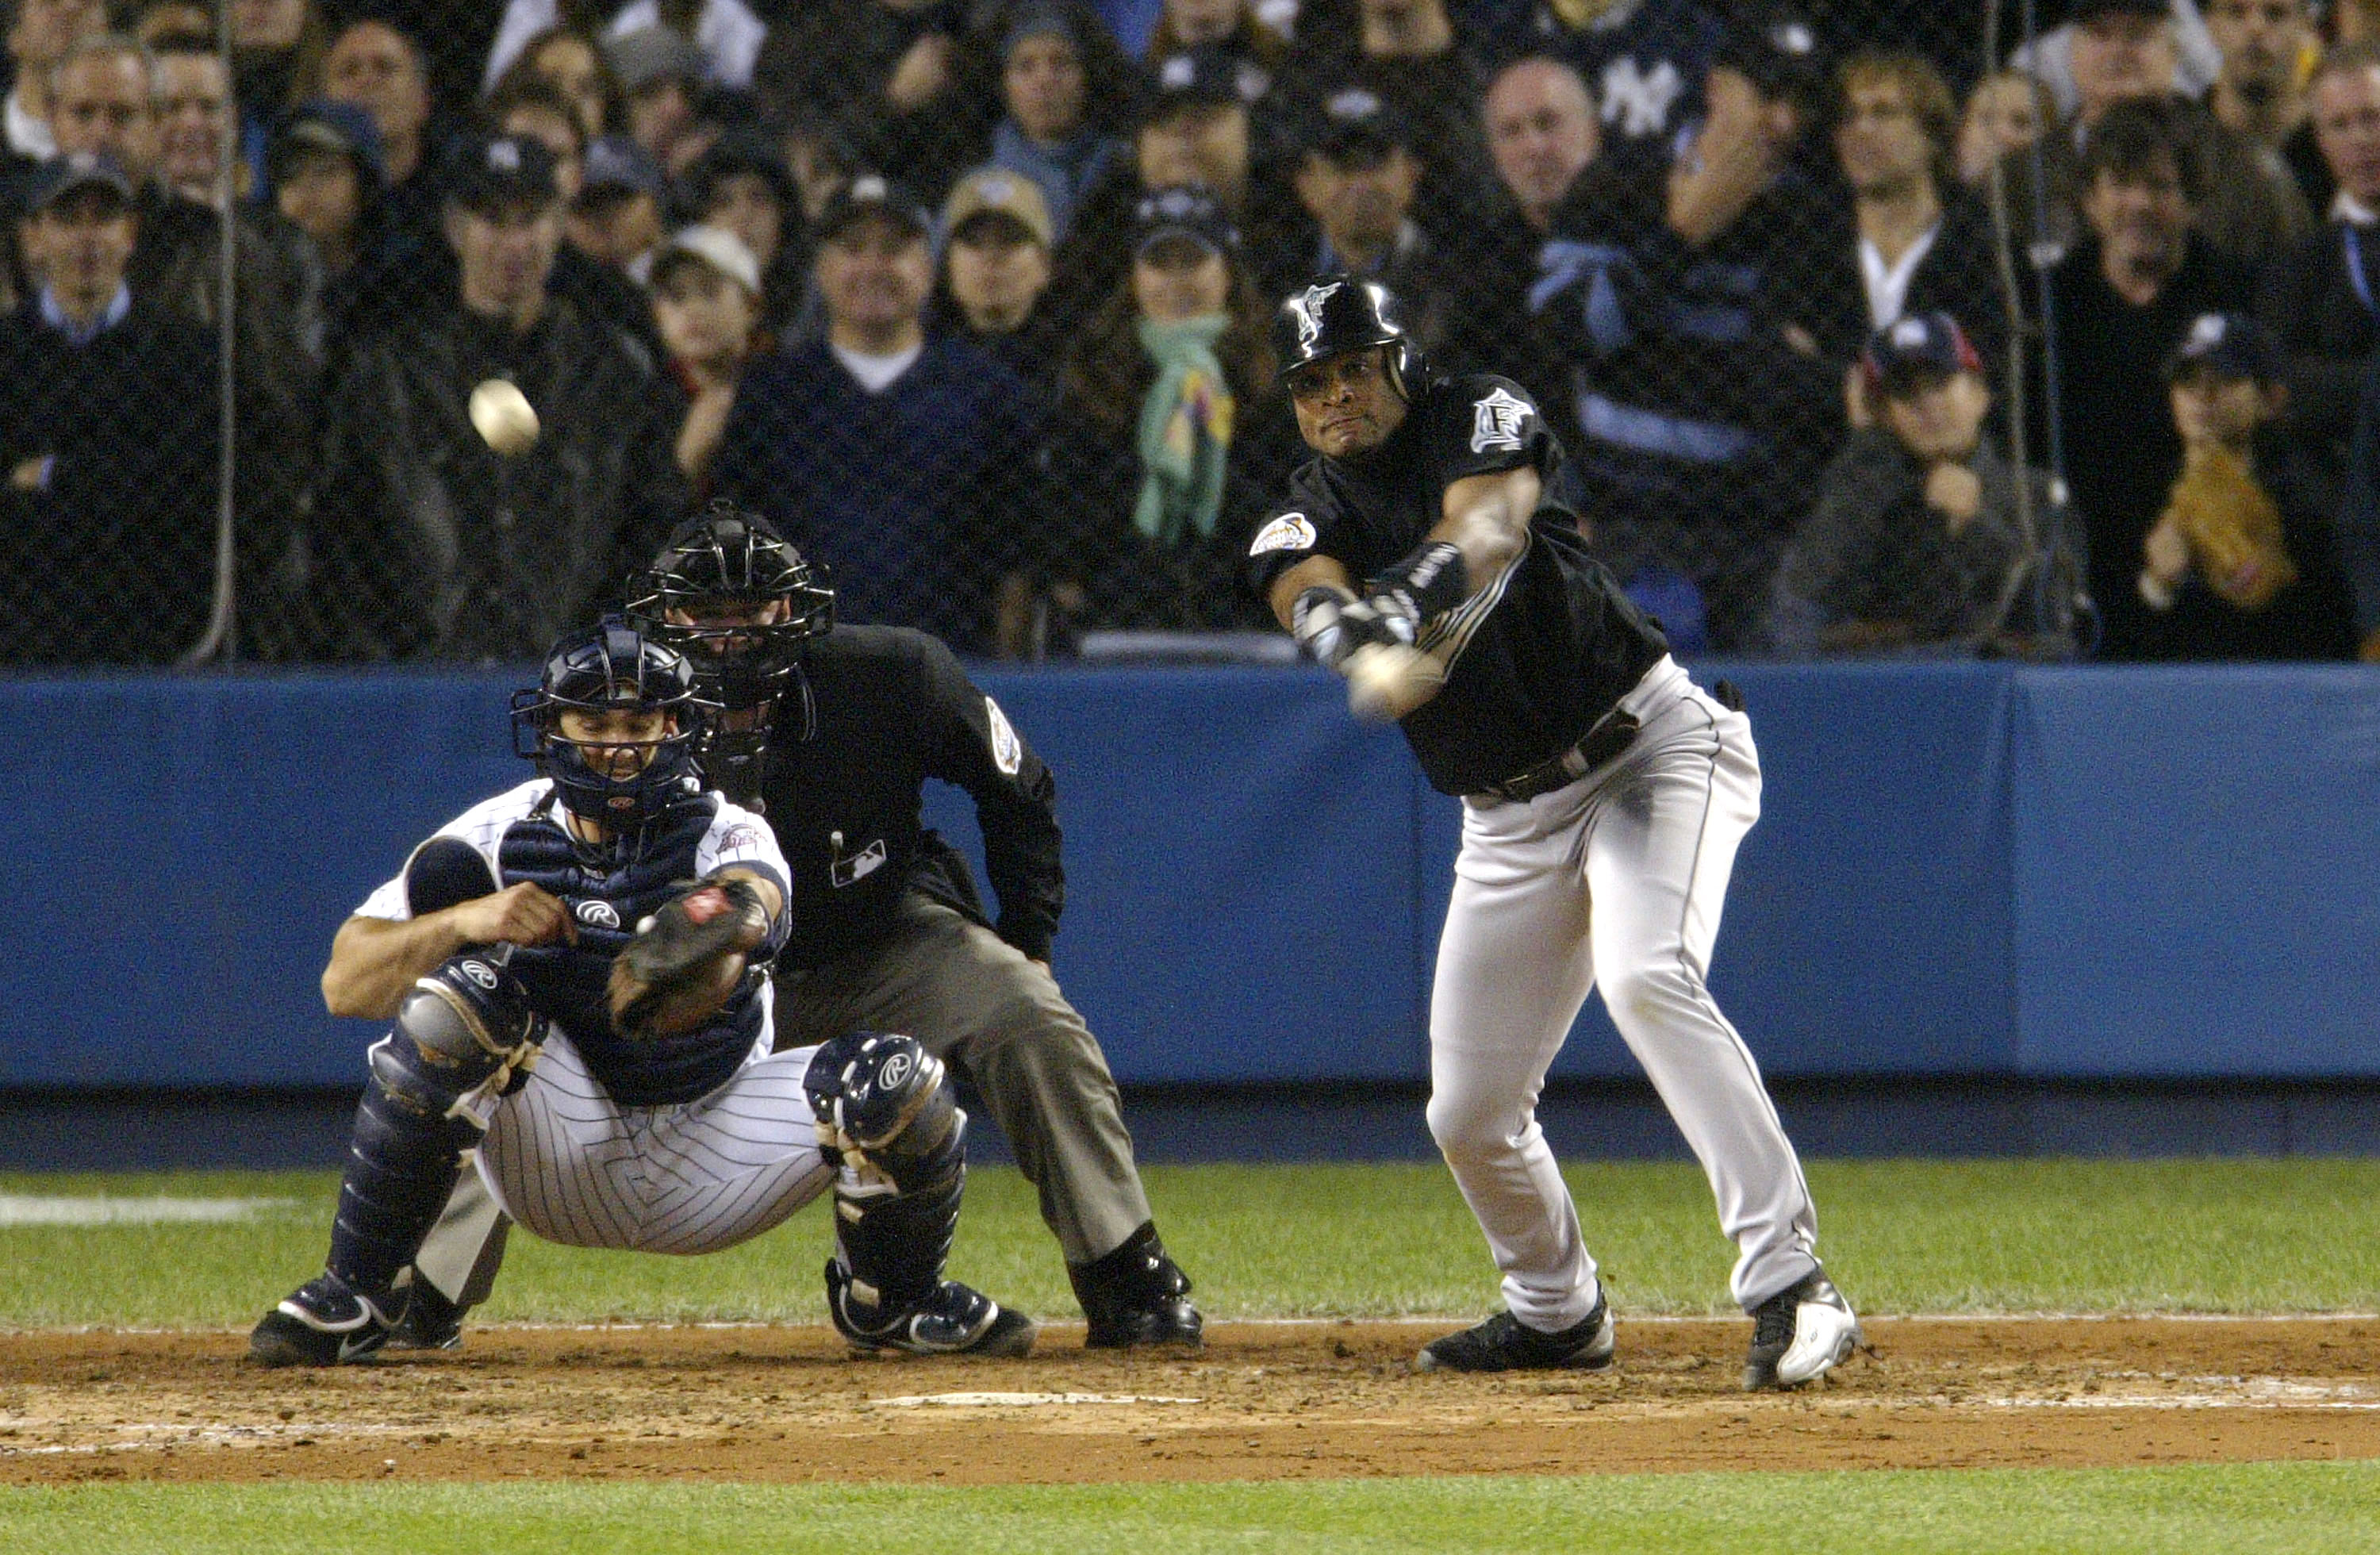 BRONX, NY - OCTOBER 25:  Luis Castillo #1 of the Florida Marlins hits an RBI single to score teammate for Alex Gonzalez in the fifthe inning during game six of the Major League Baseball World Series on October 25, 2003 at Yankee Stadium in the Bronx, New